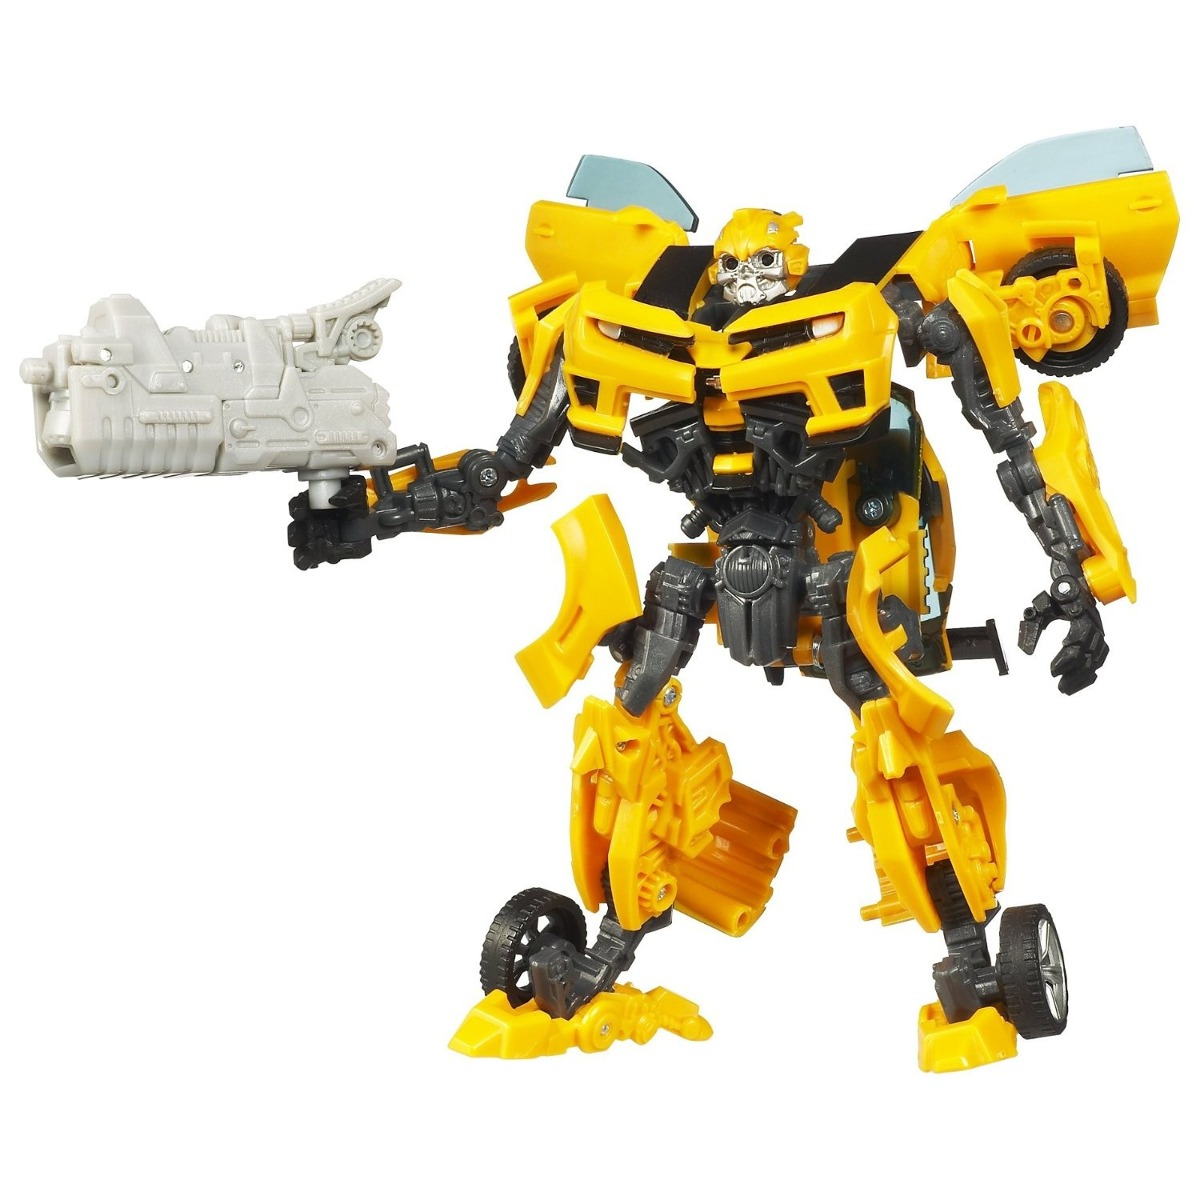 transformers 3 dark of the moon movie deluxe class figure